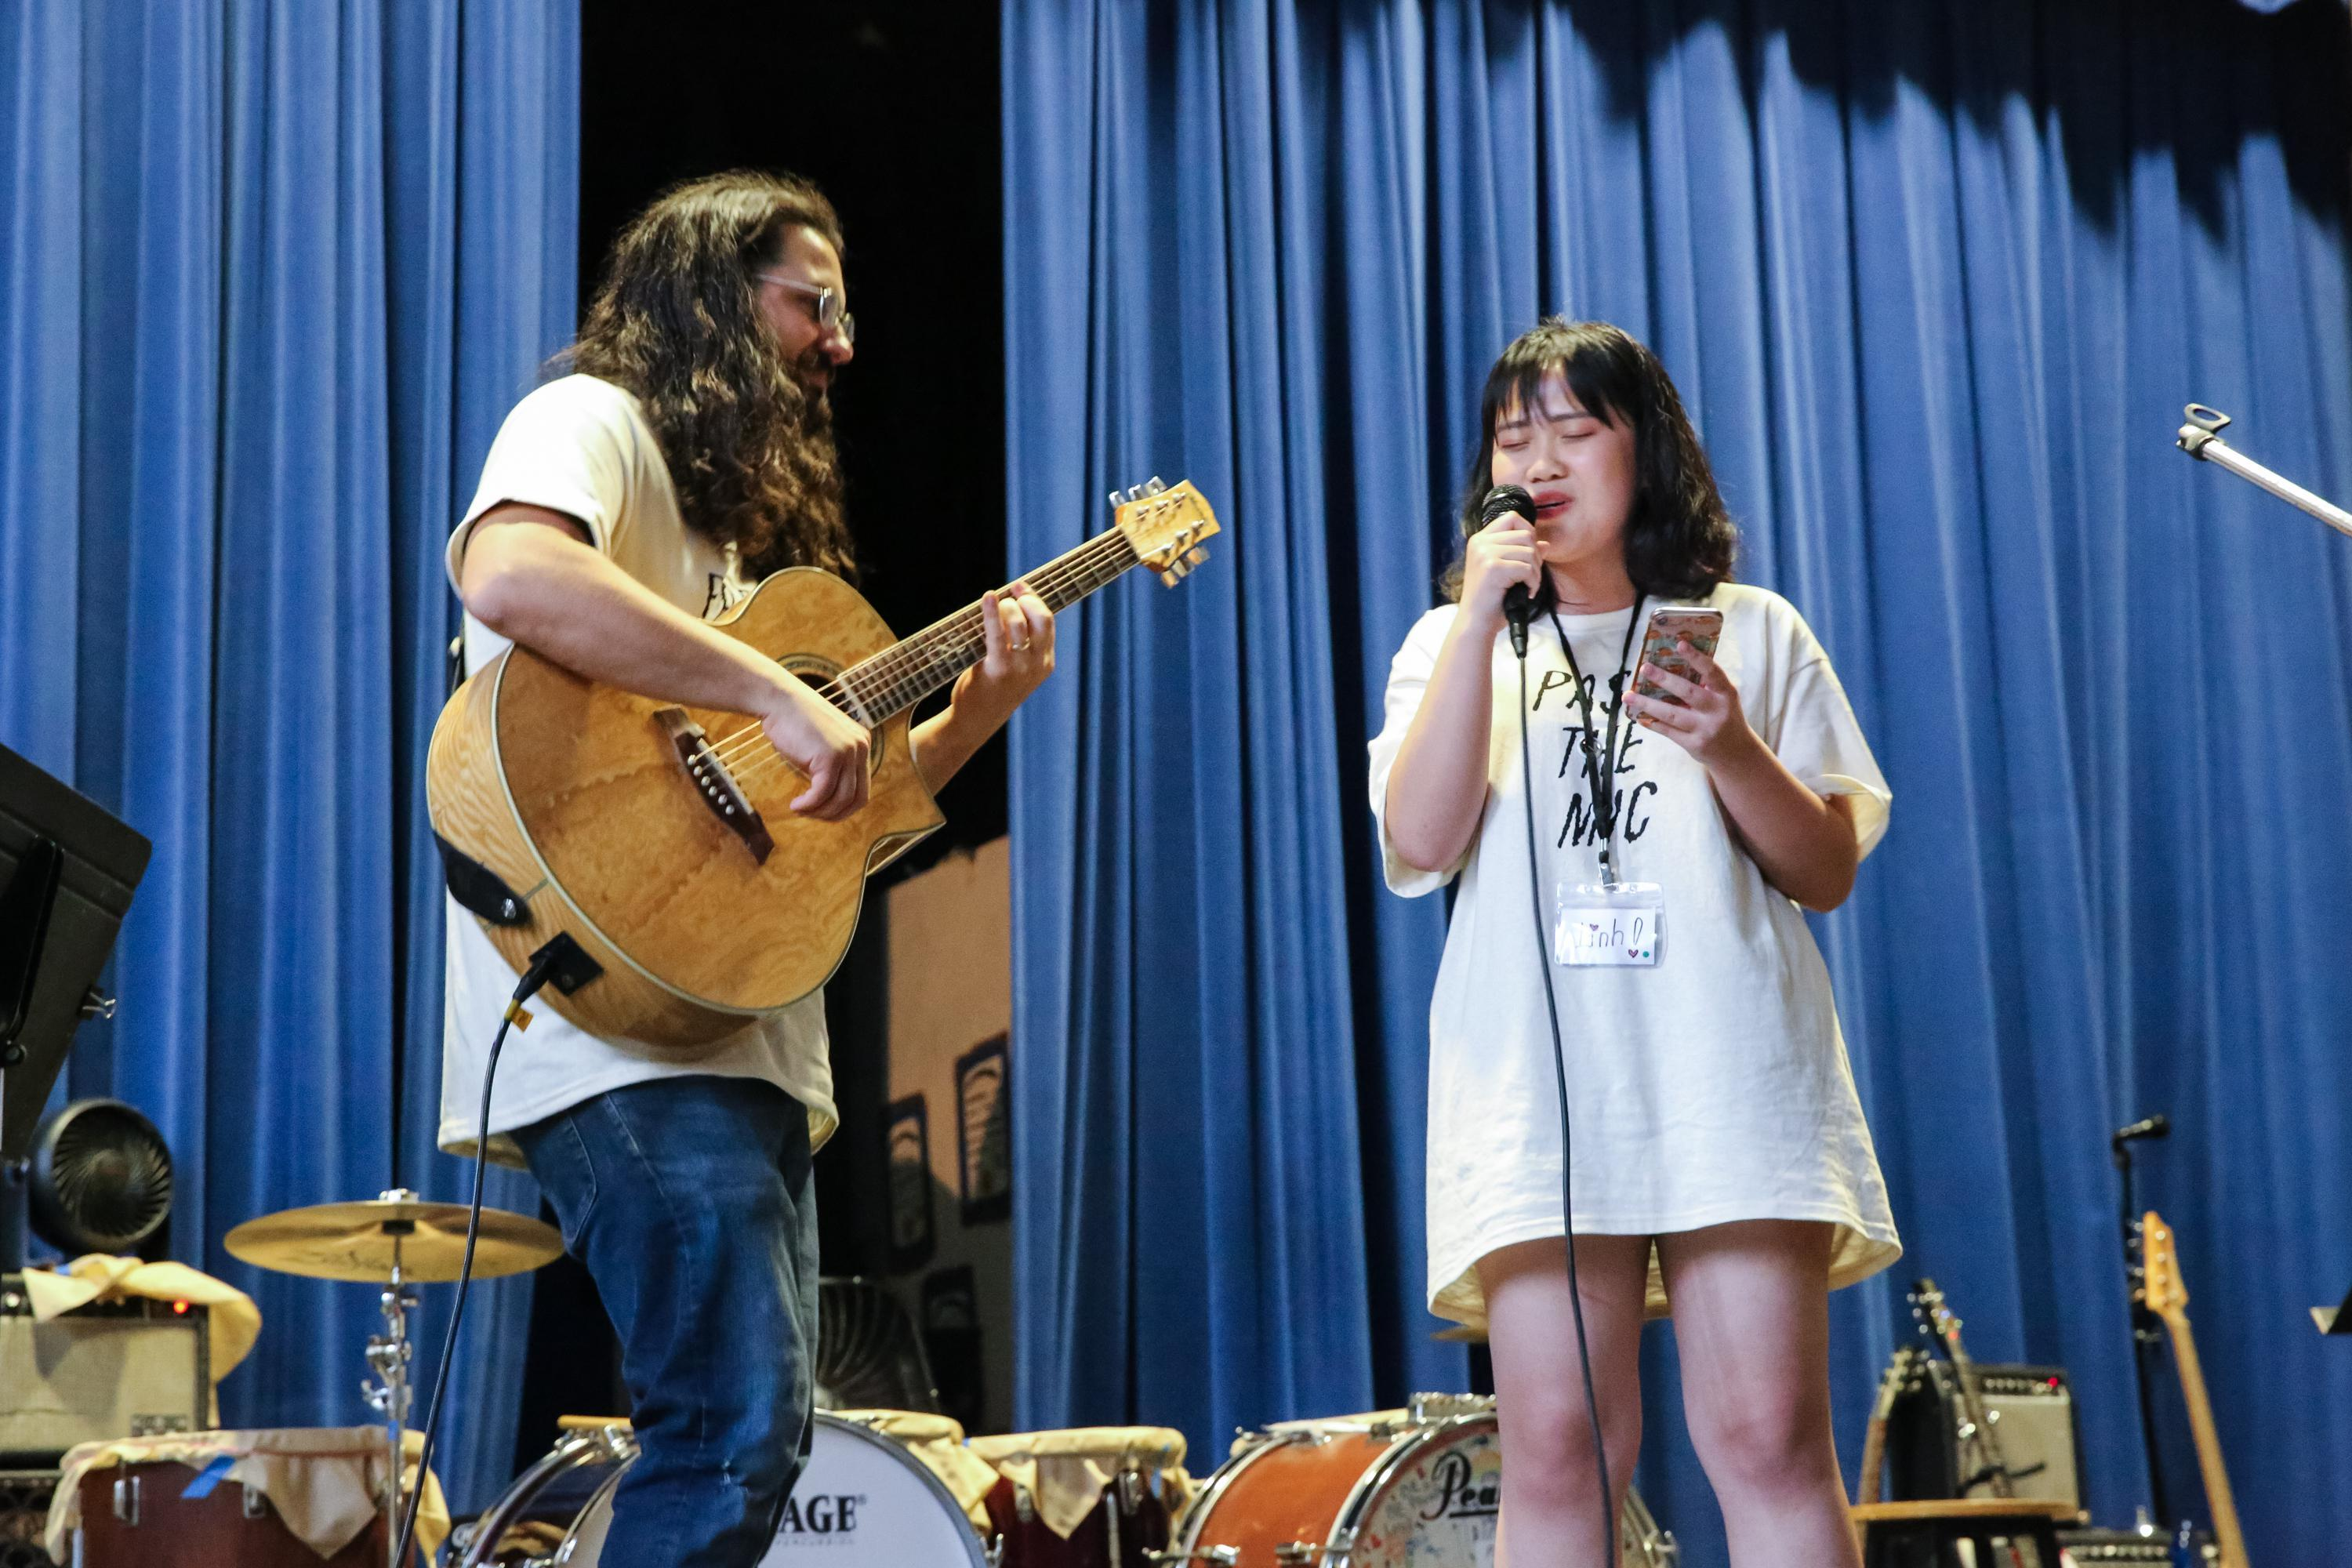 Linh Doan, right, sings her song for the Pass the Mic concert in Portland, Ore., Friday, Aug. 2, 2019. Sam Adams, left, of Portland band Sama Dams provides backing guitar.